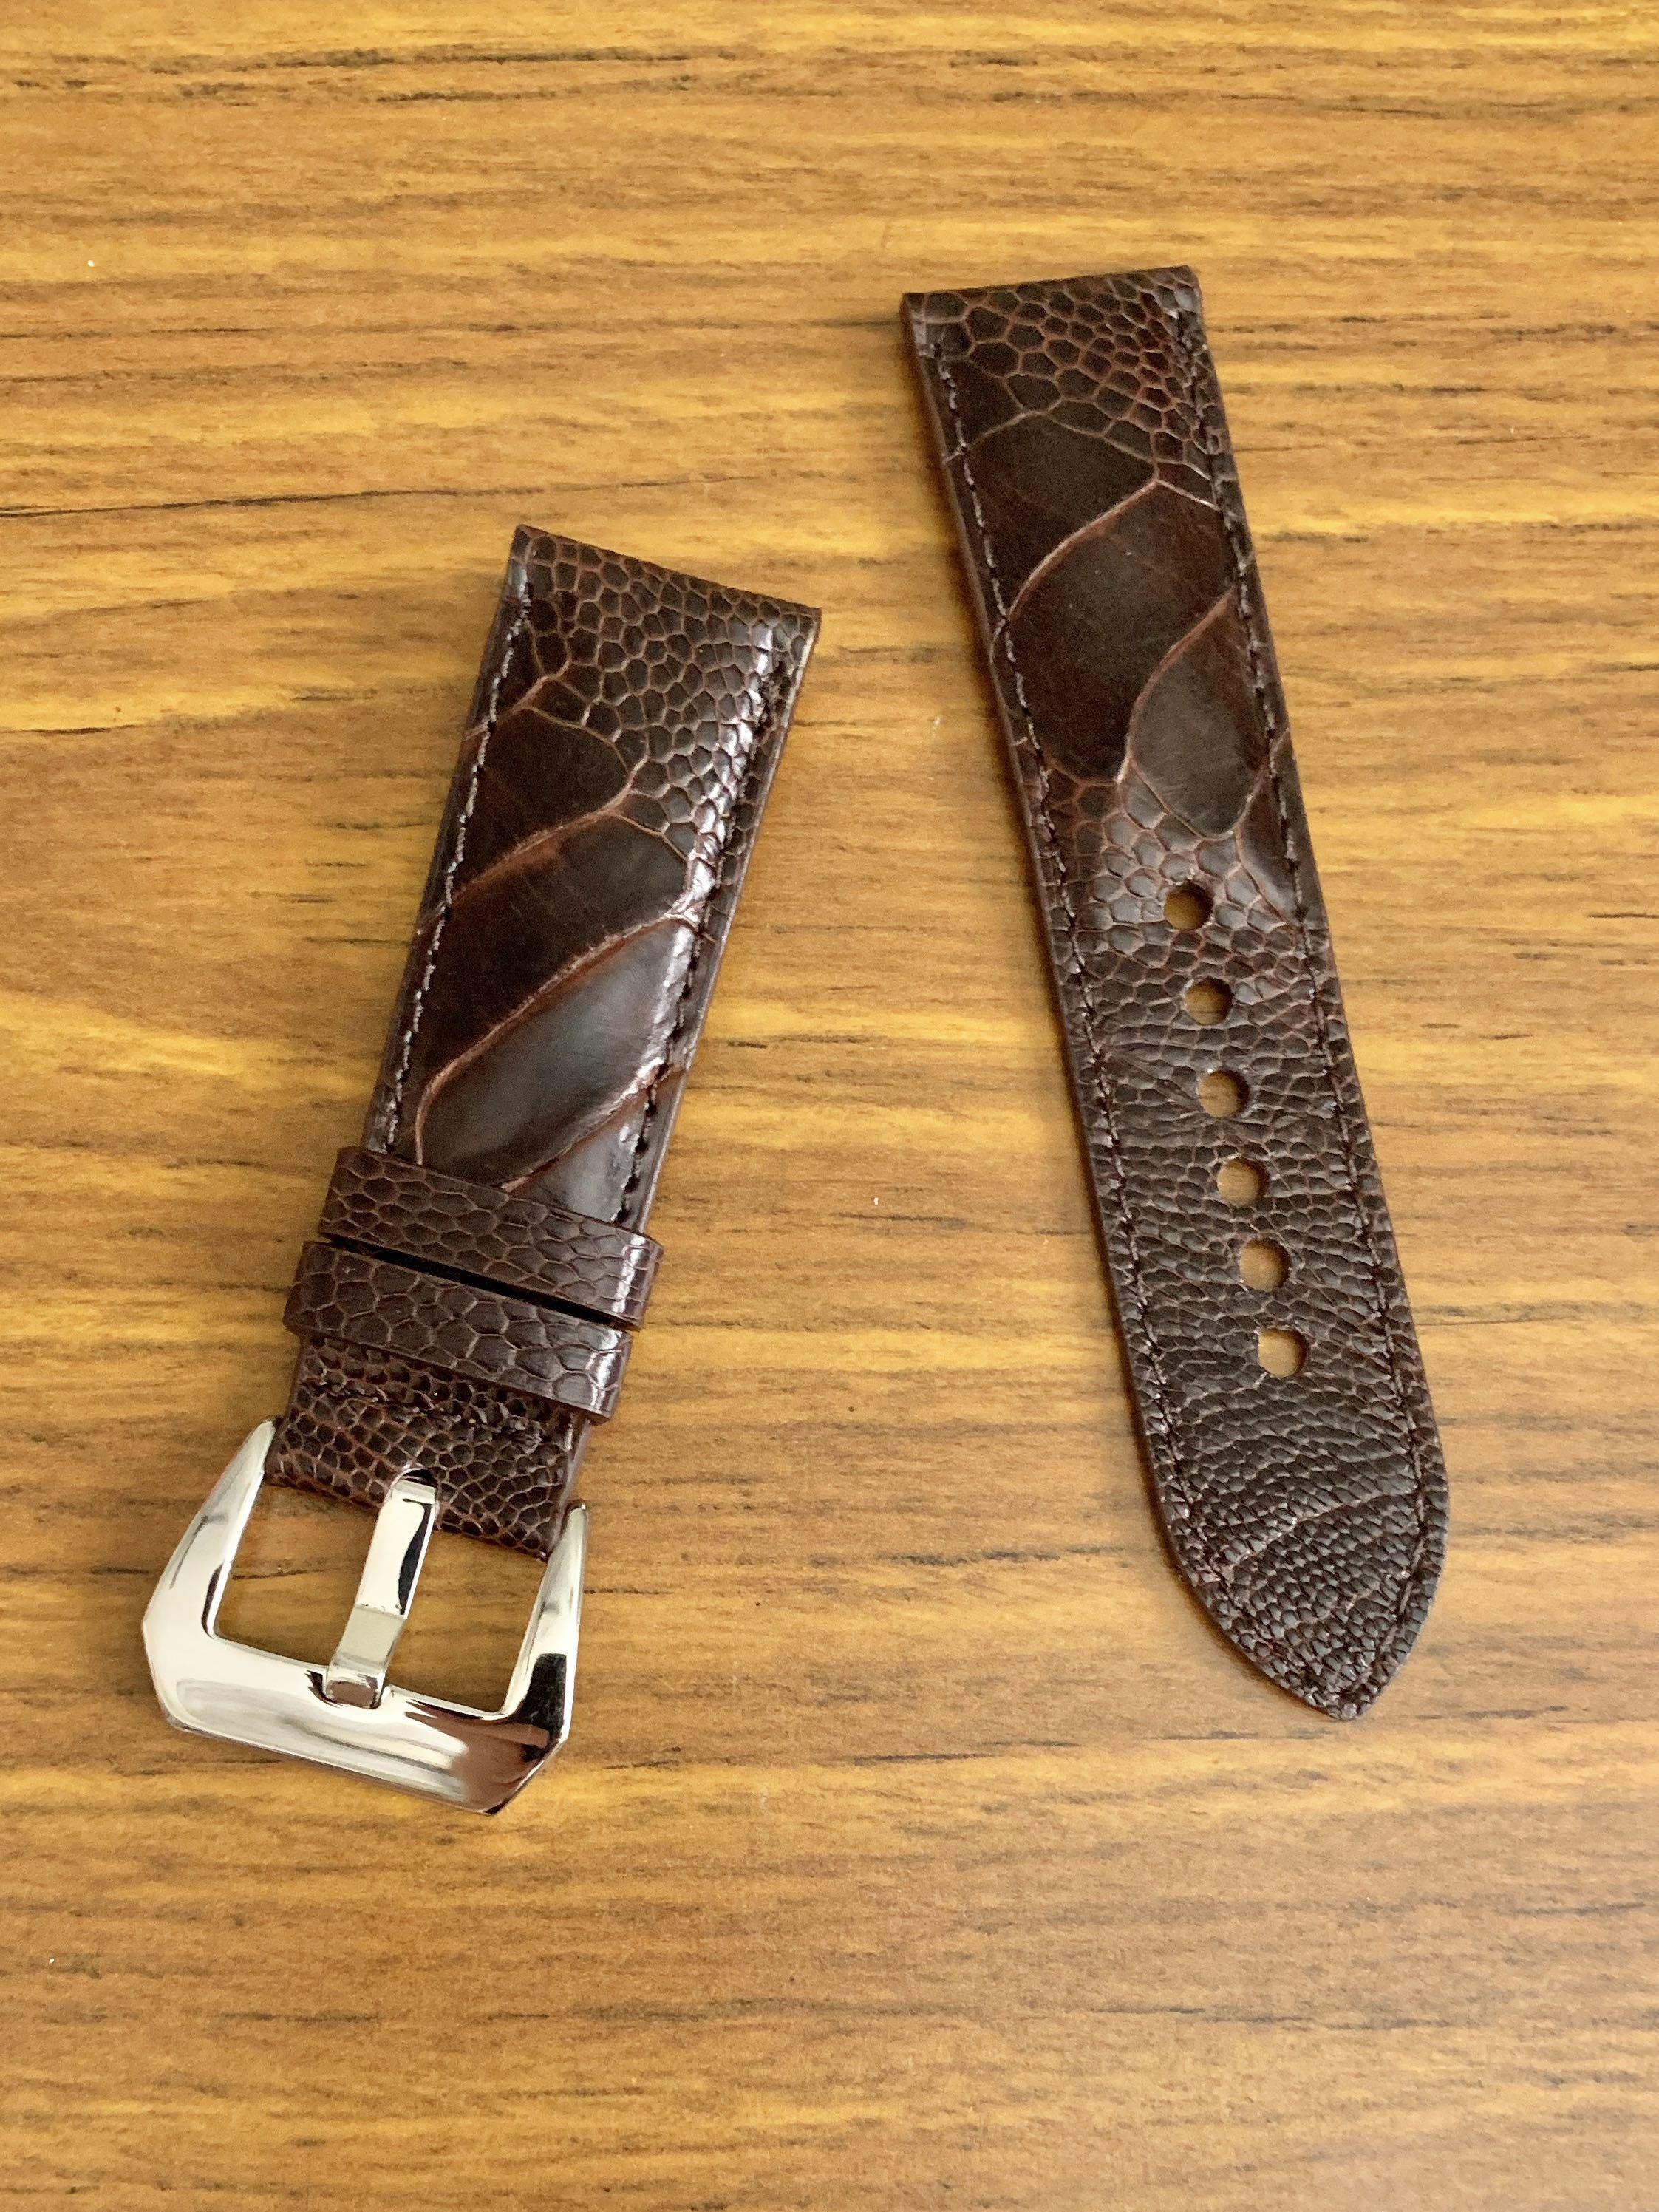 24mm/22mm Authentic Pecan Brown Ostrich Leg (big scales) Leather Watch Strap - (gorgeous scales- only piece like that, once sold no more 😊) (Standard length: L-120mm, S-75mm)